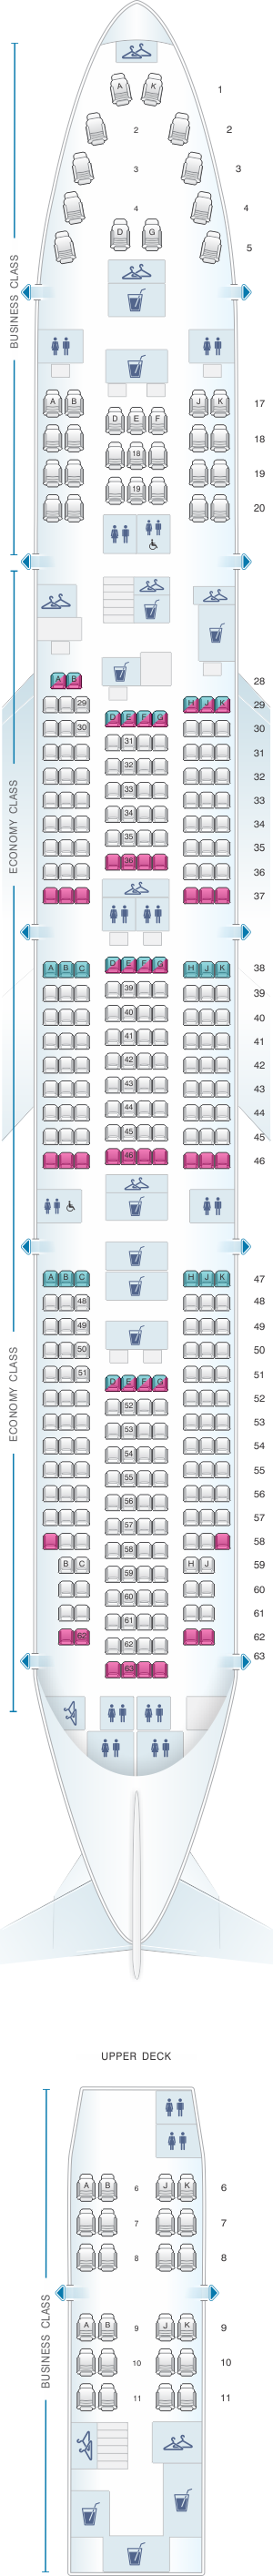 Seat map for China Airlines Boeing B747 400 375PAX